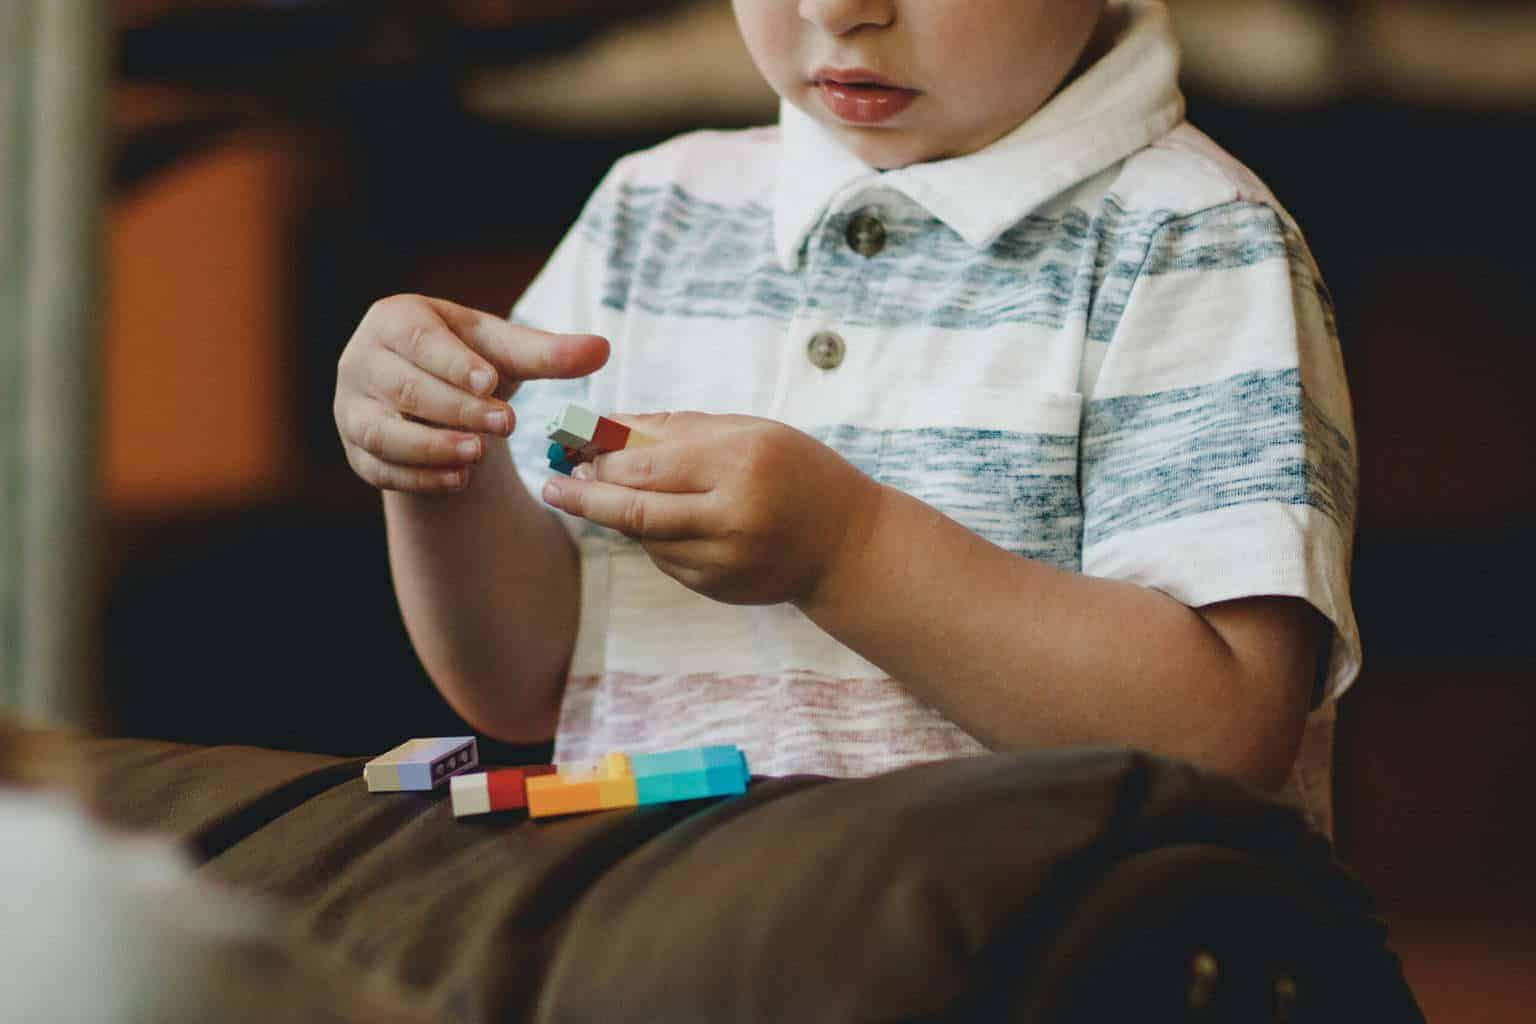 We can learn a lot about what children enjoy by watching them play independently.